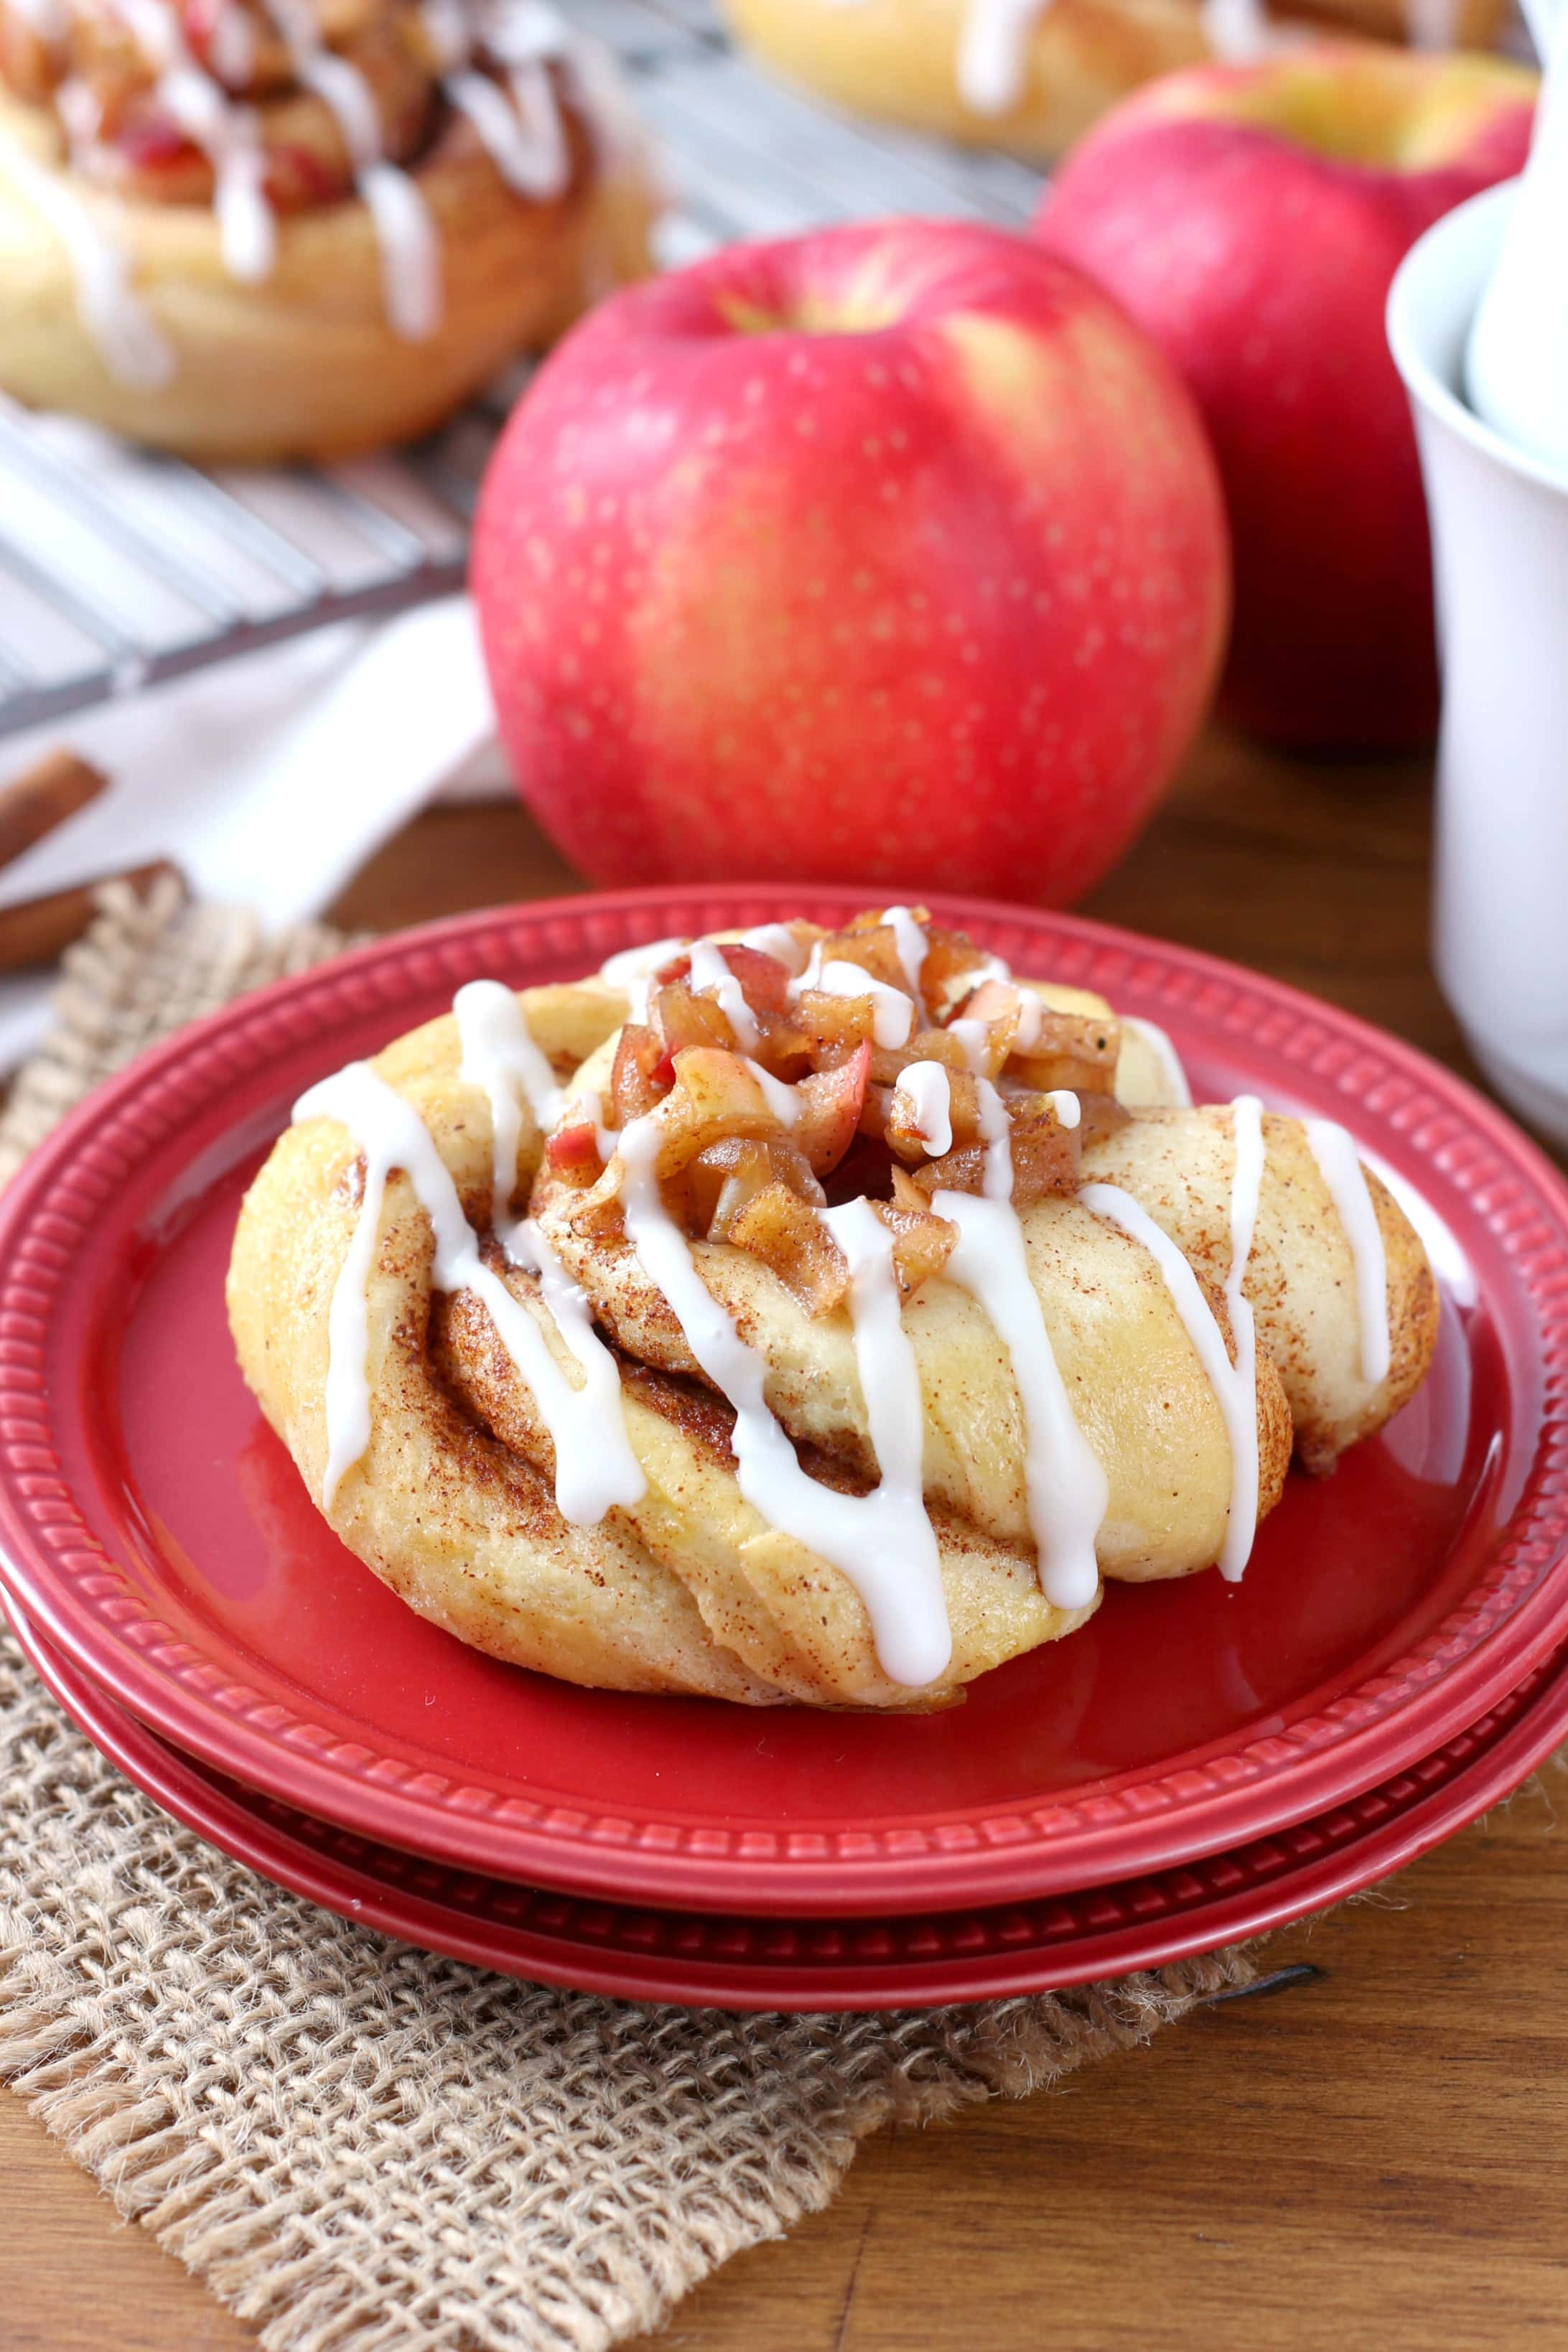 Tender, flaky Apple Pie Filled Cinnamon Twists Recipe from A Kitchen Addiction